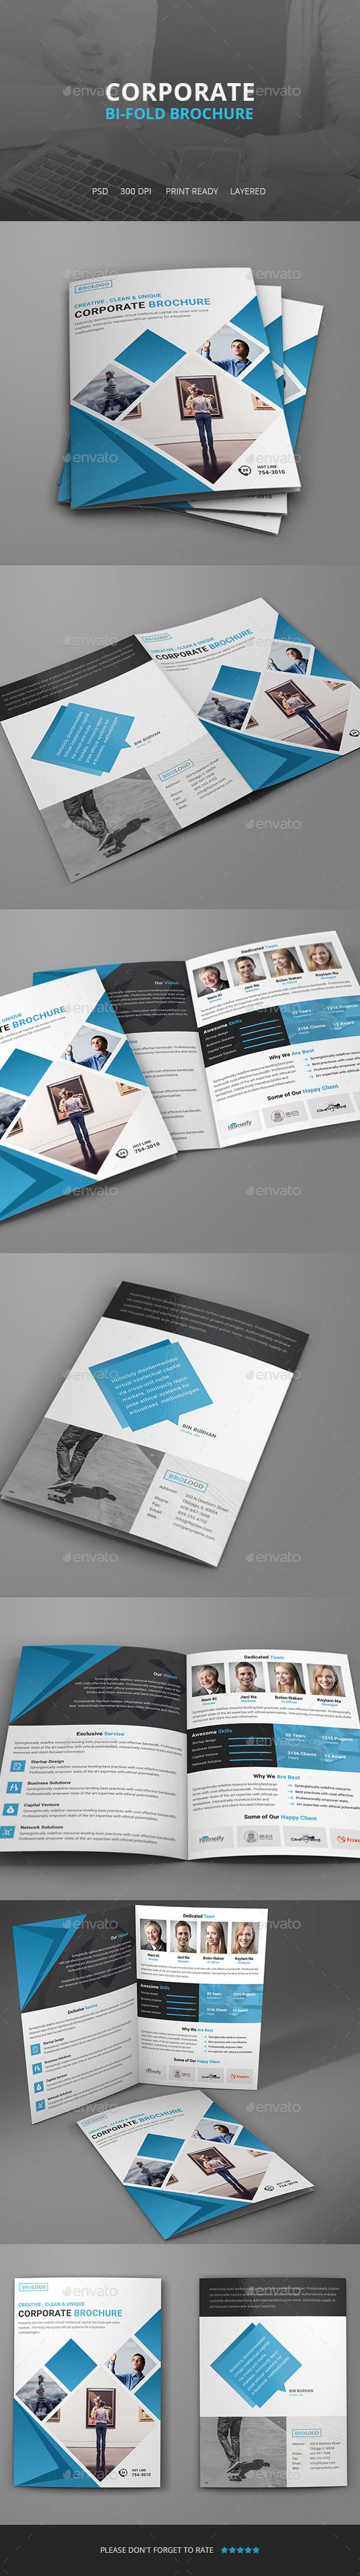 Corporate Bi-Fold Brochure Tempalte #design #brochure Download: http://graphicriver.net/item/corporate-bifold-brochure-/11686116?ref=ksioks